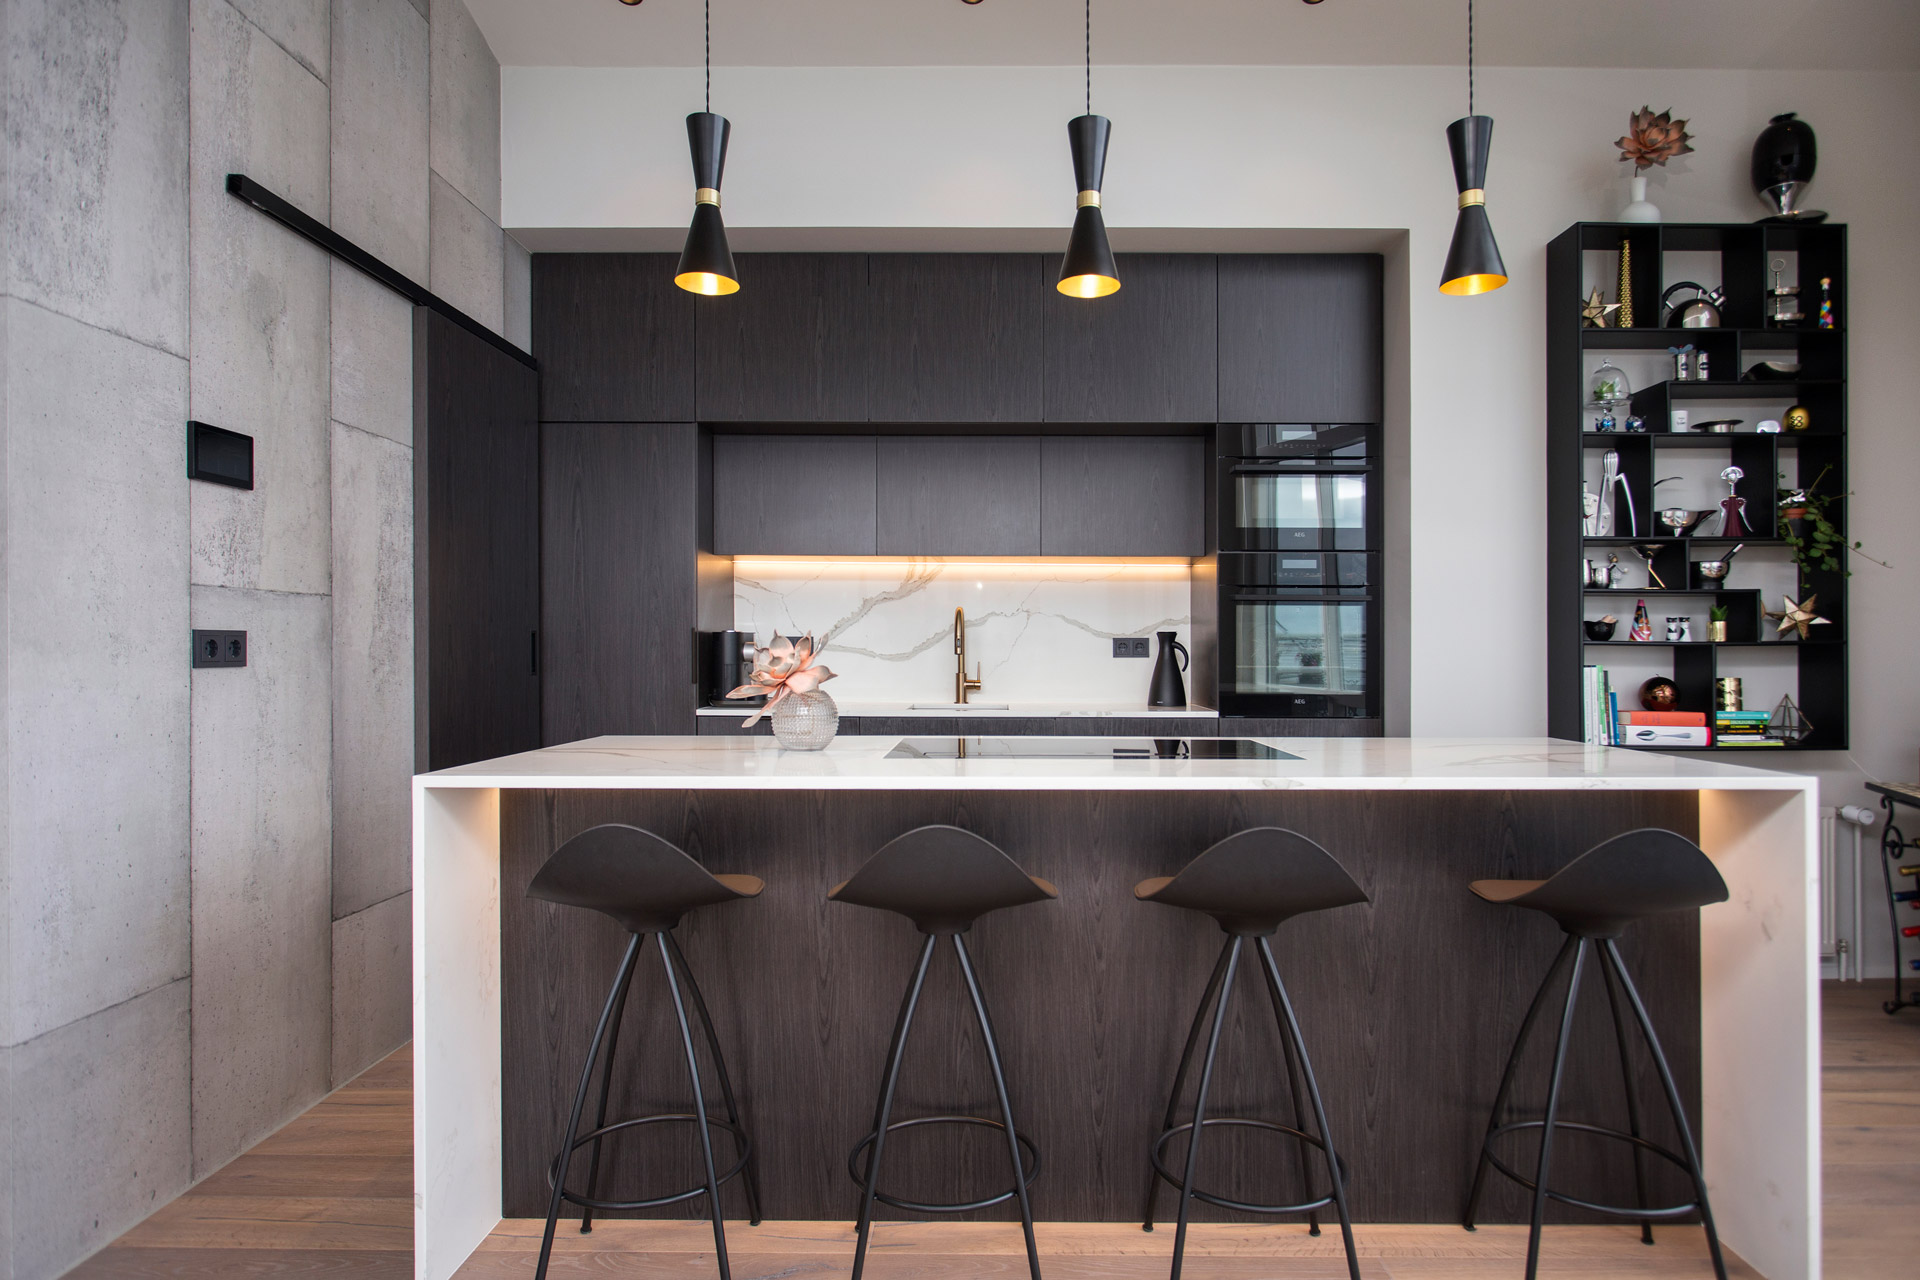 Five Contemporary Chandeliers for above your Kitchen Island